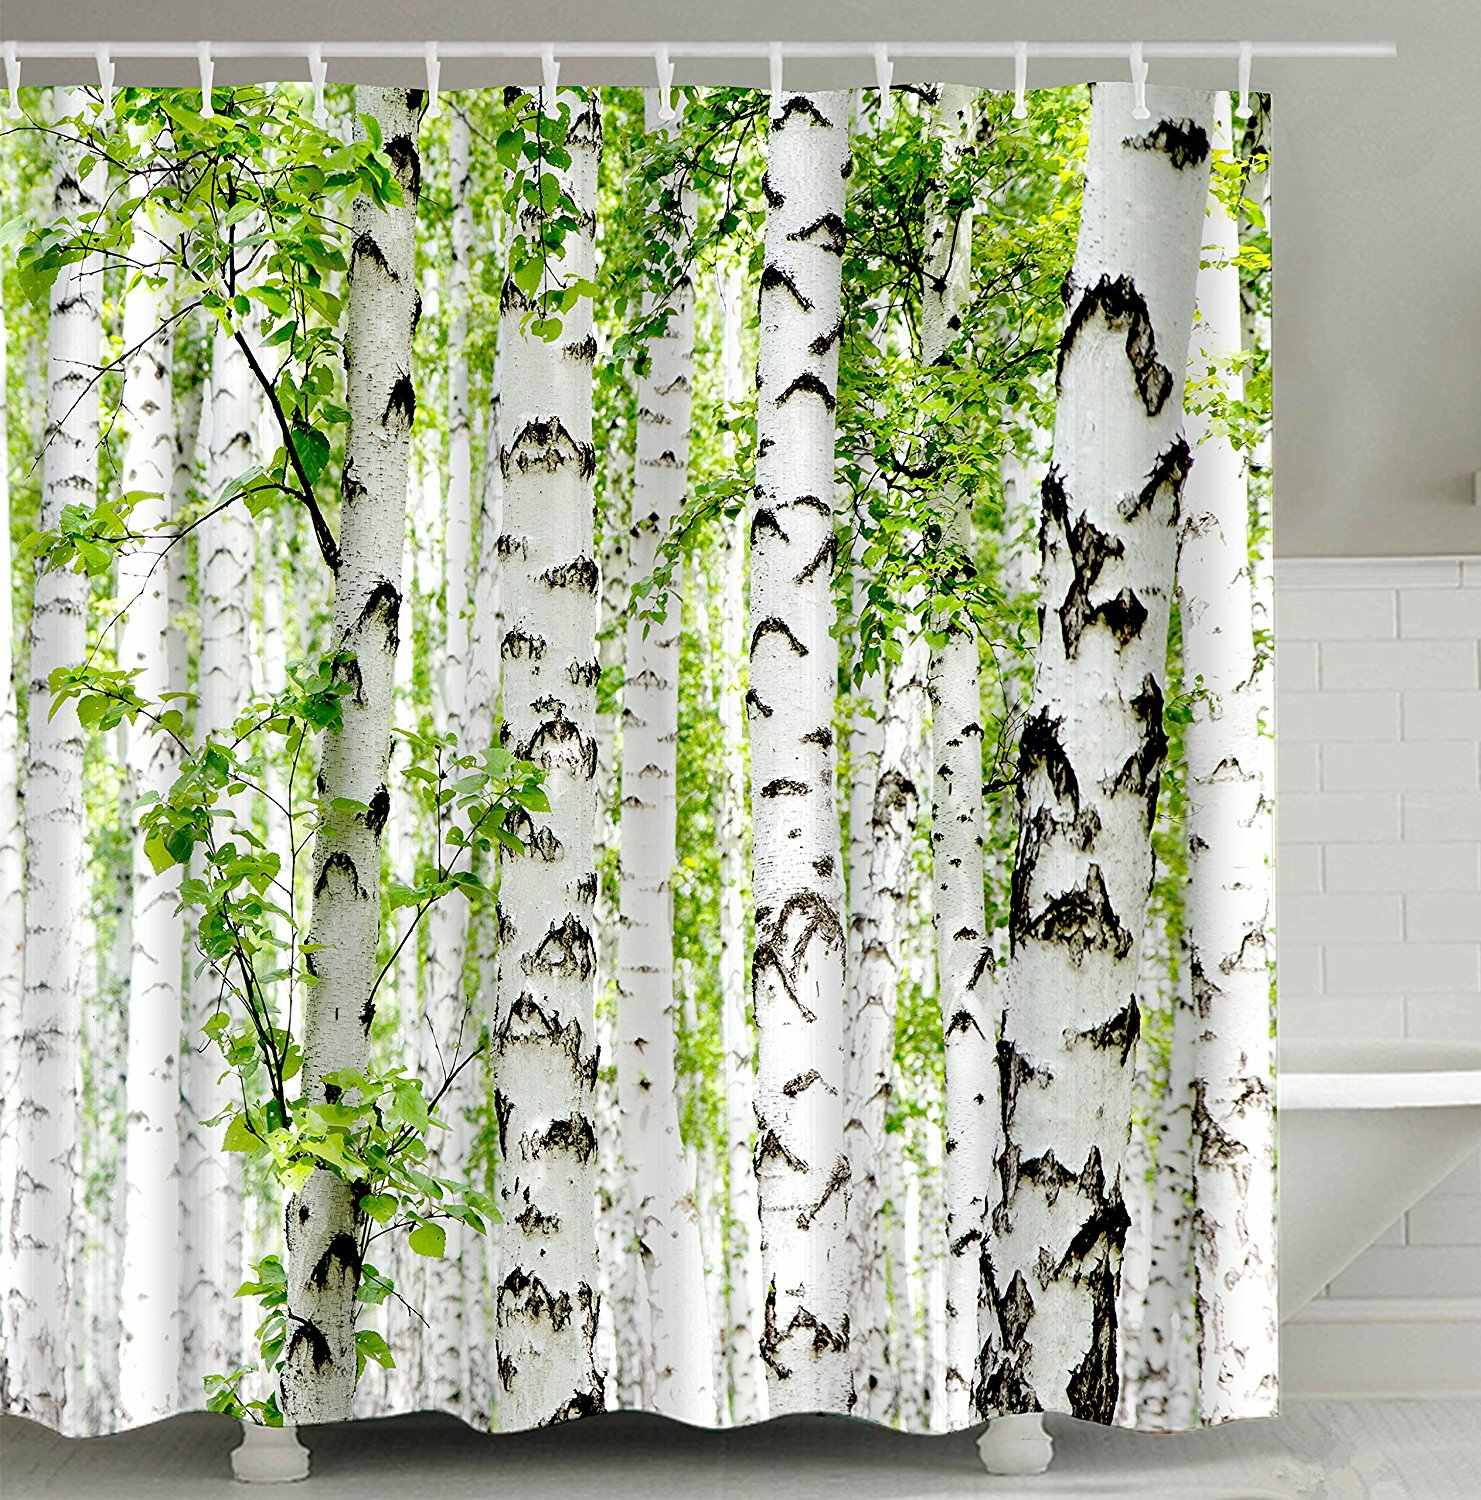 Birch Tree Forest Branch Leaves Waterproof and Mildew Resistant Fabric Bathroom Shower Curtain White Green Brown